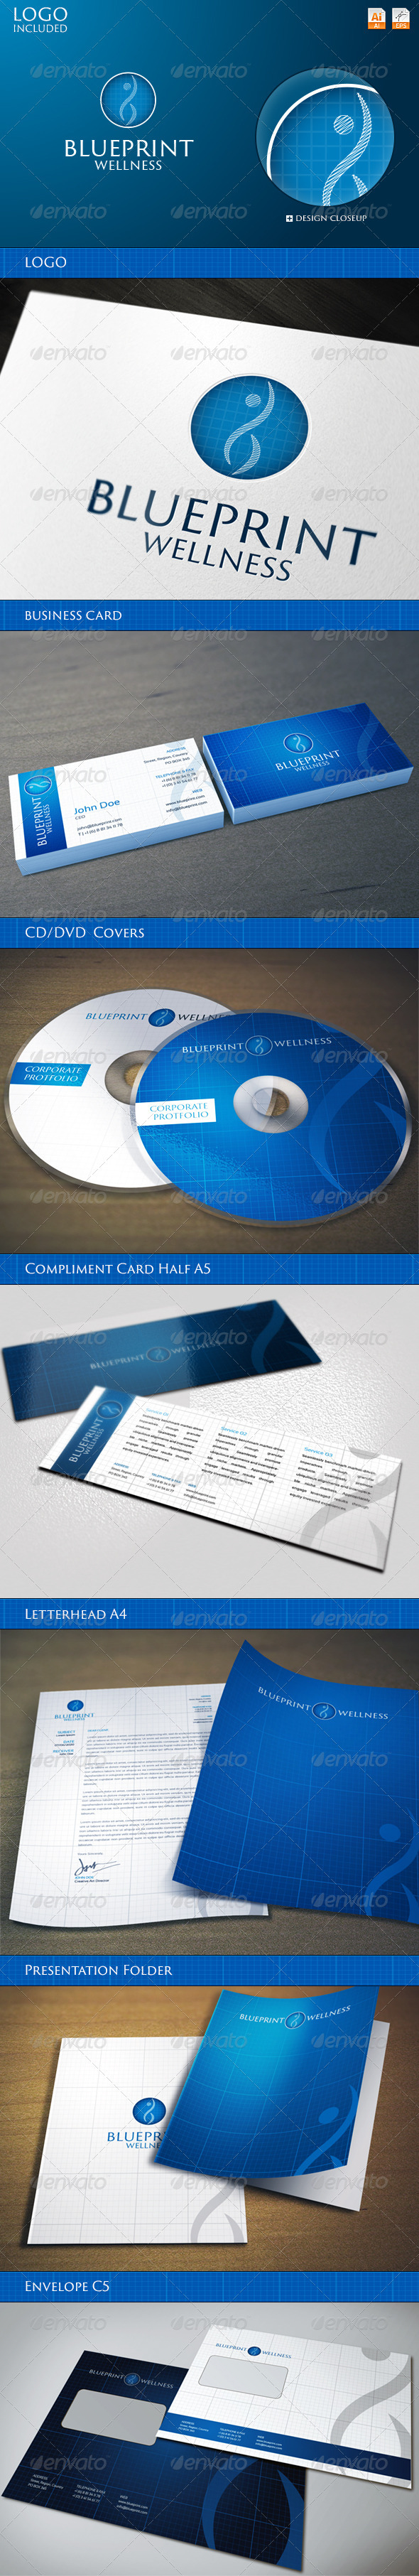 Corporate Identity - BluePrint Wellness - Stationery Print Templates